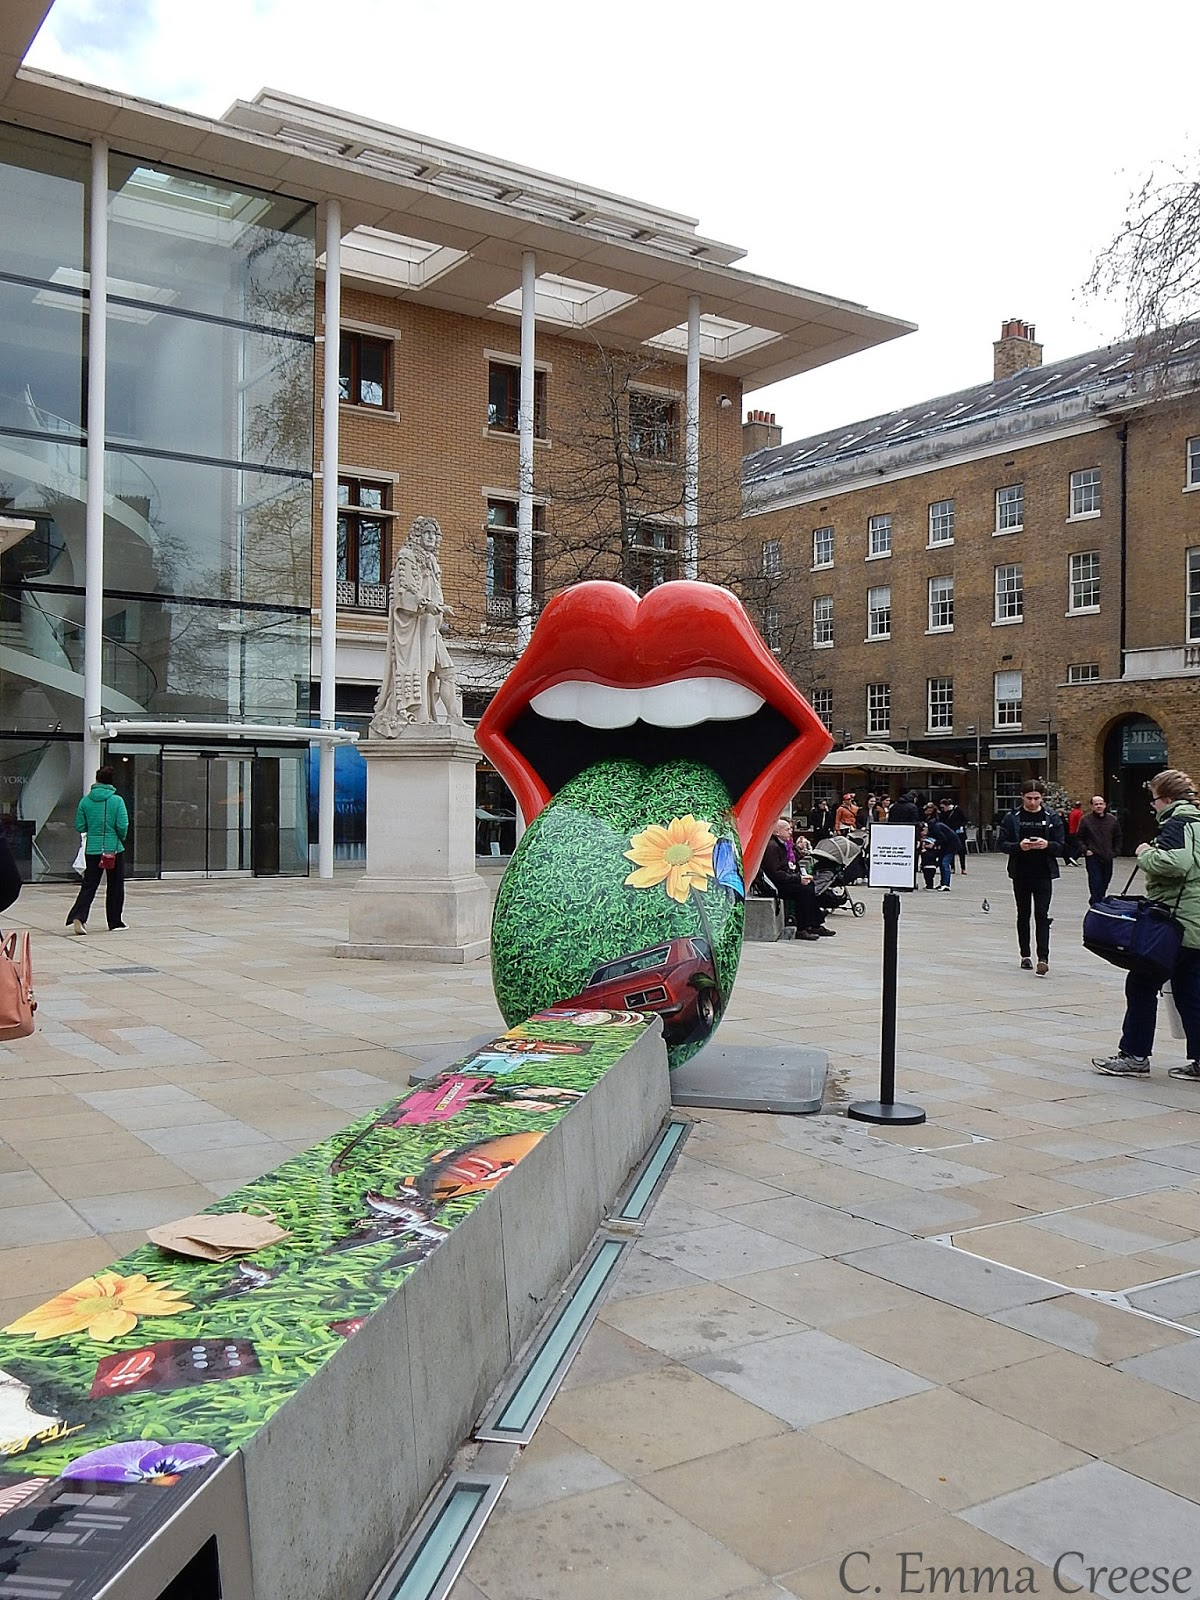 Rolling Stones Exhibitionism Duke of York Square Adventures of a London Kiwi